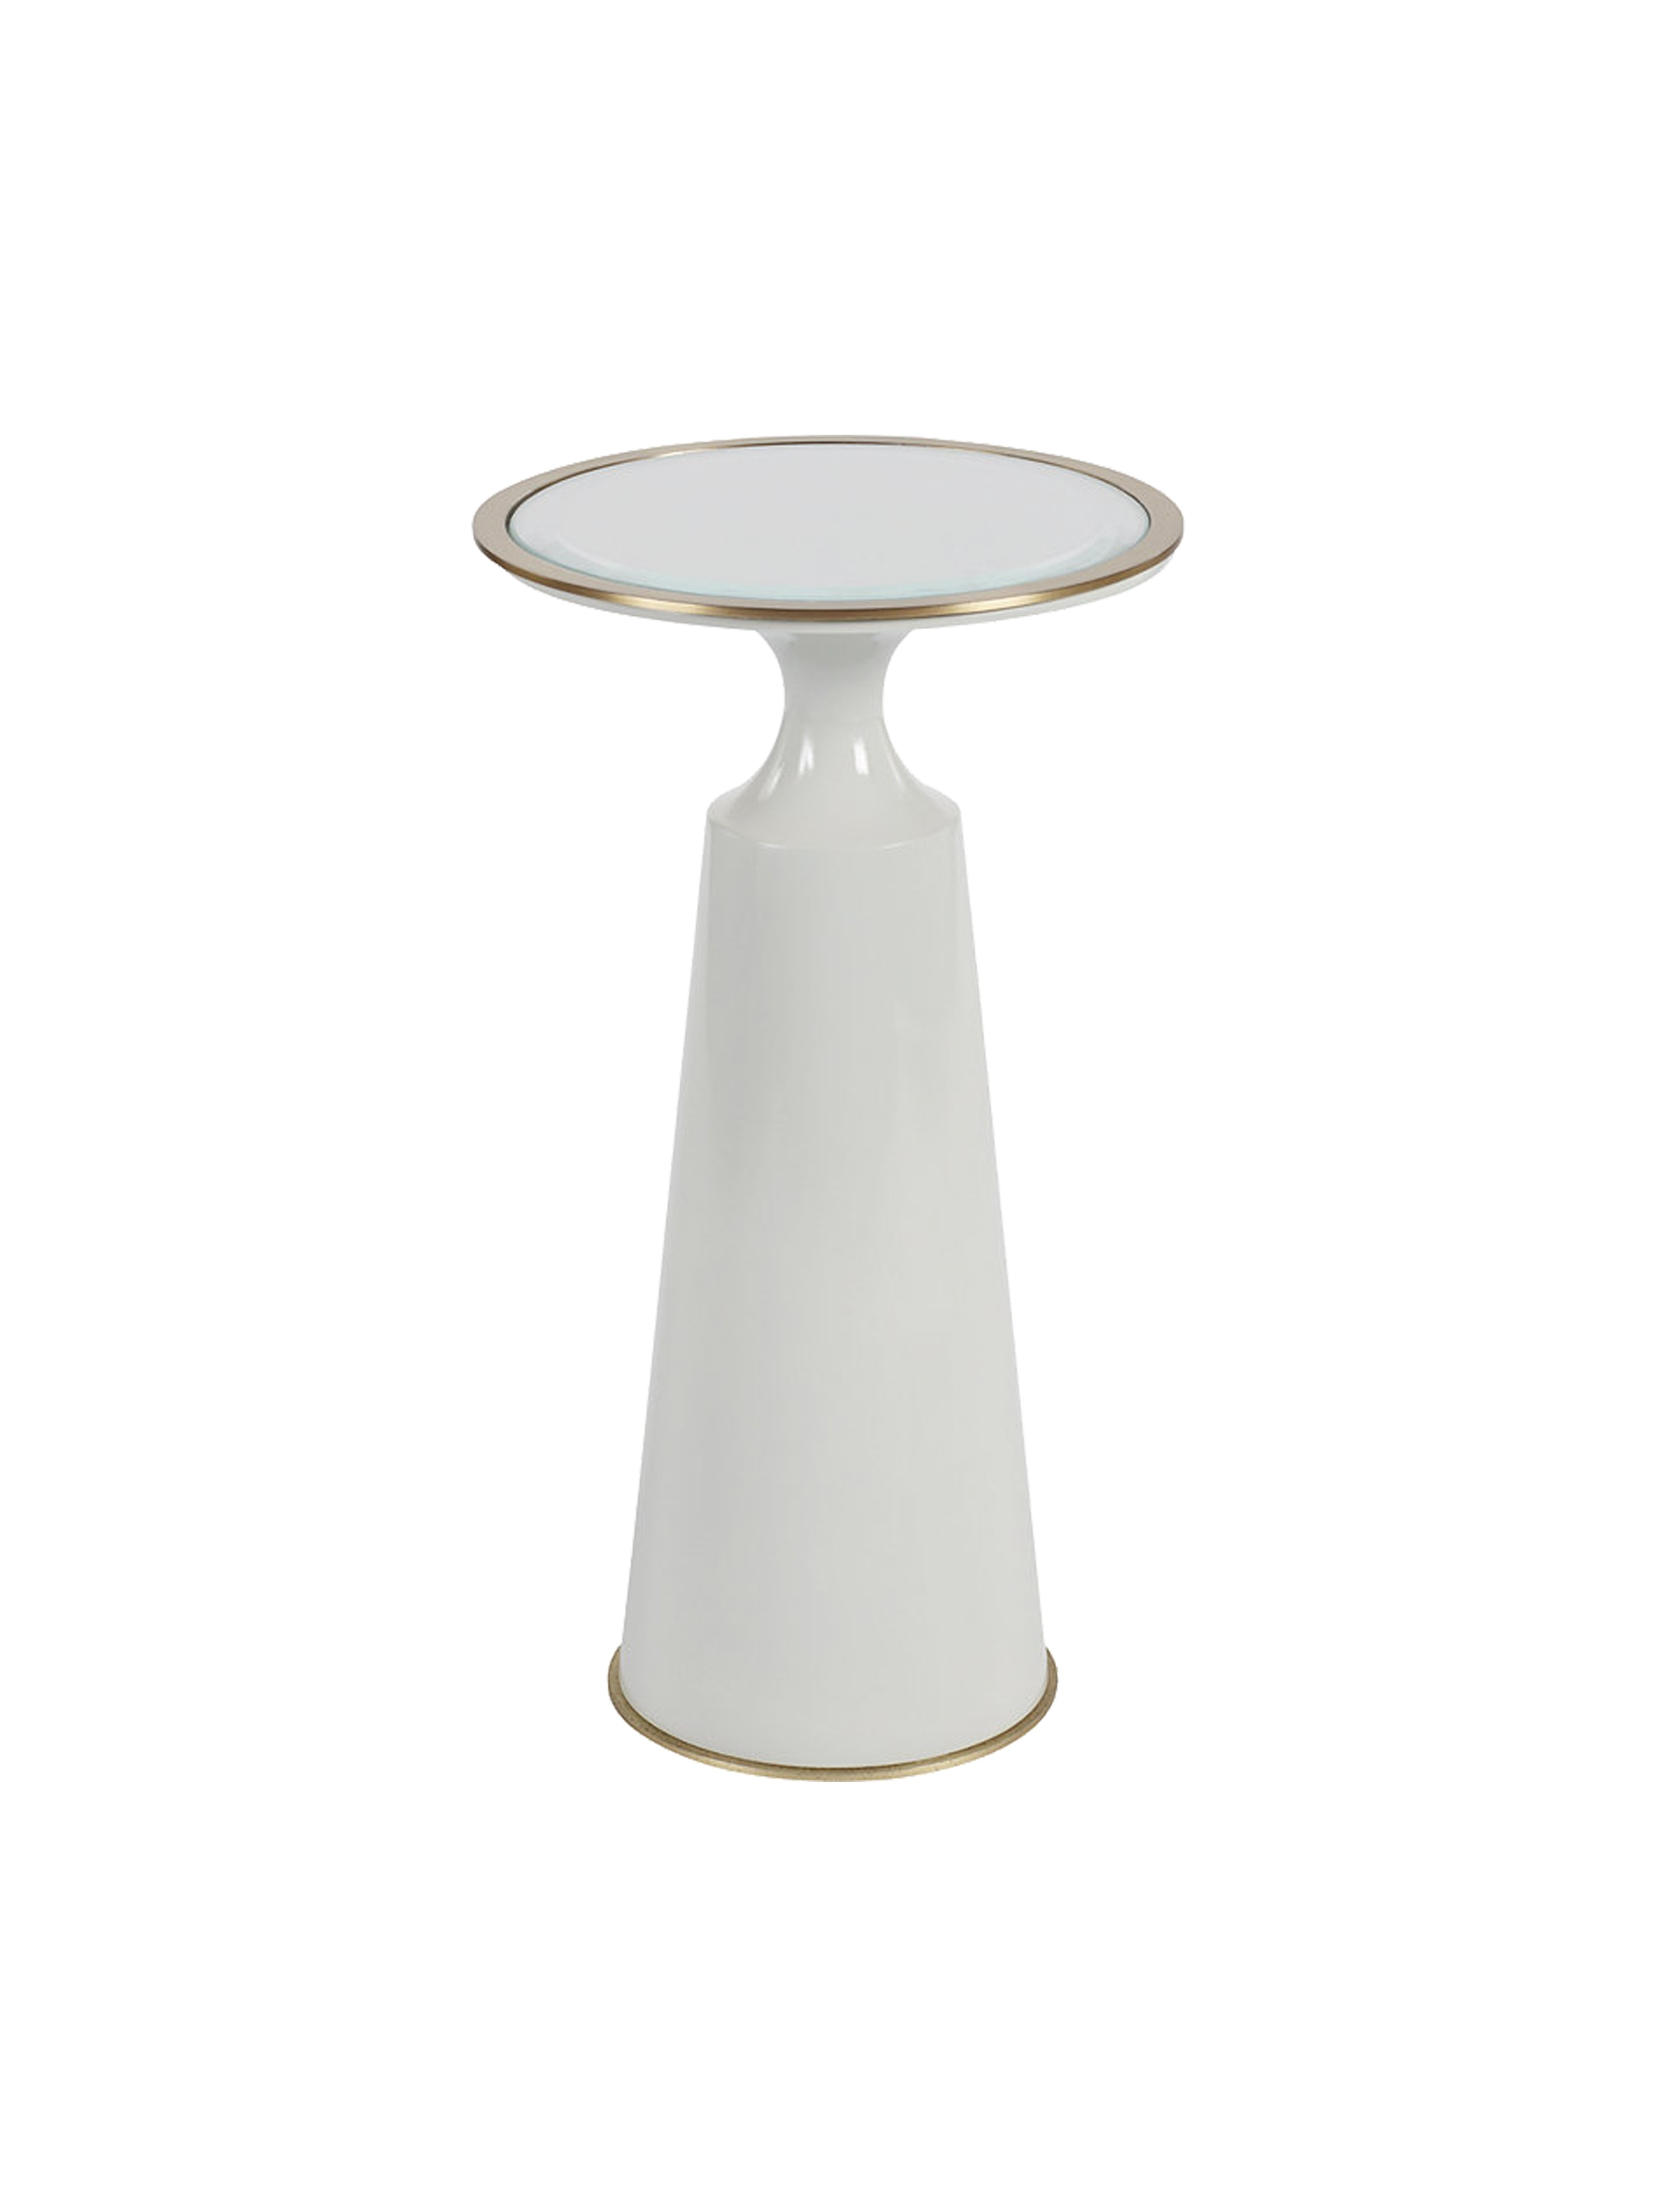 contemporary round accent table with bronze trim putnam mason furniture tables side end glass metal industrial transitional dering hall quality lamps coffee toronto drawers black